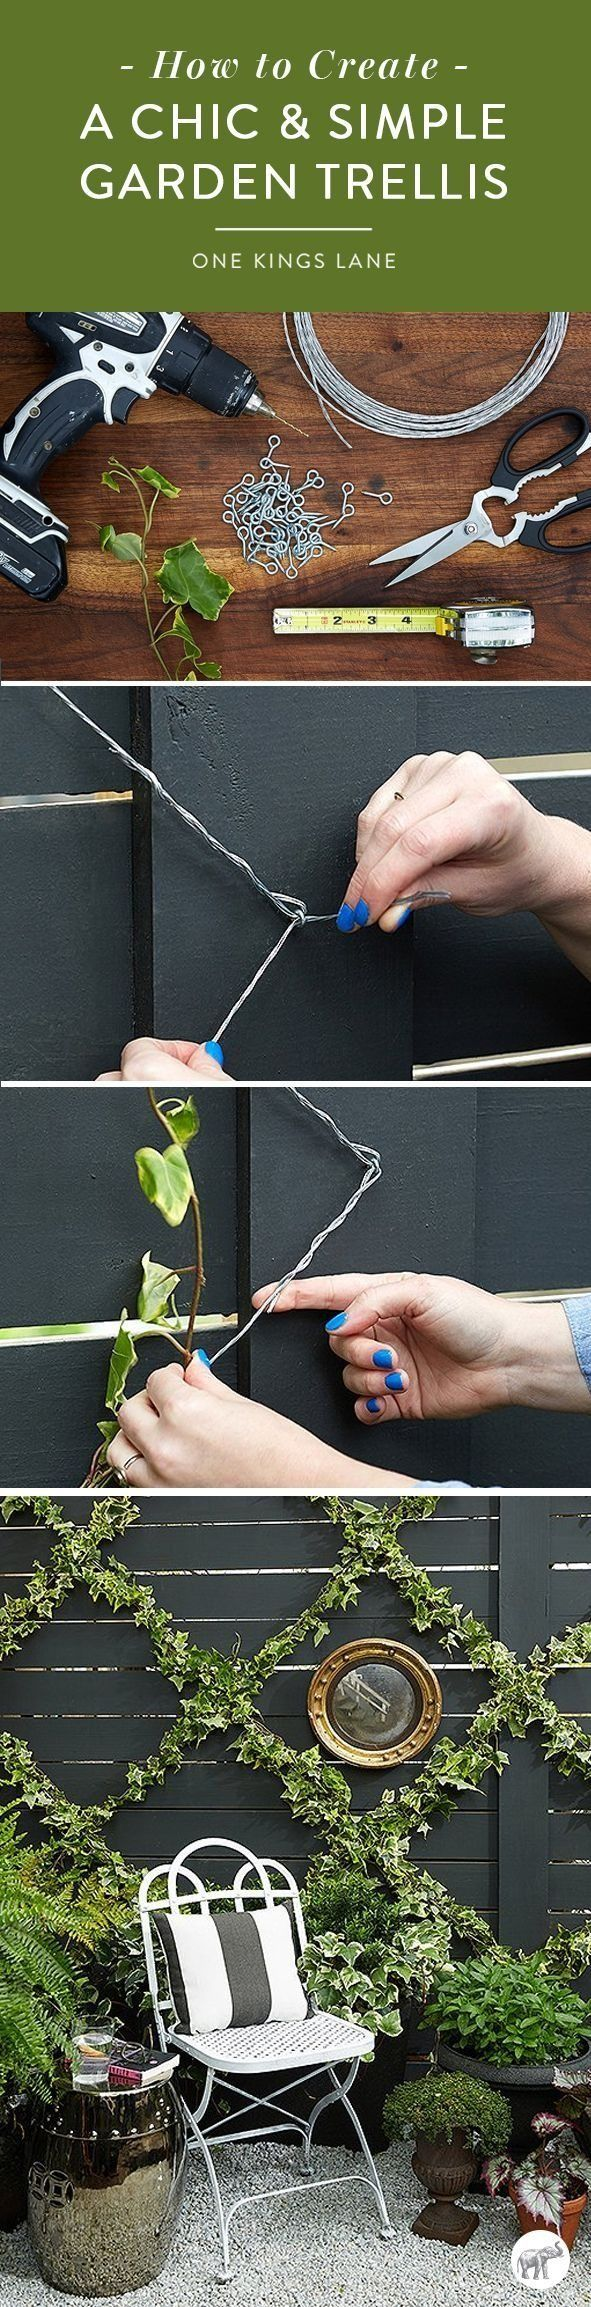 Learn how to create a chic and simple DIY ivy-covered garden trellis, just in time for summer outdoor entertaining!